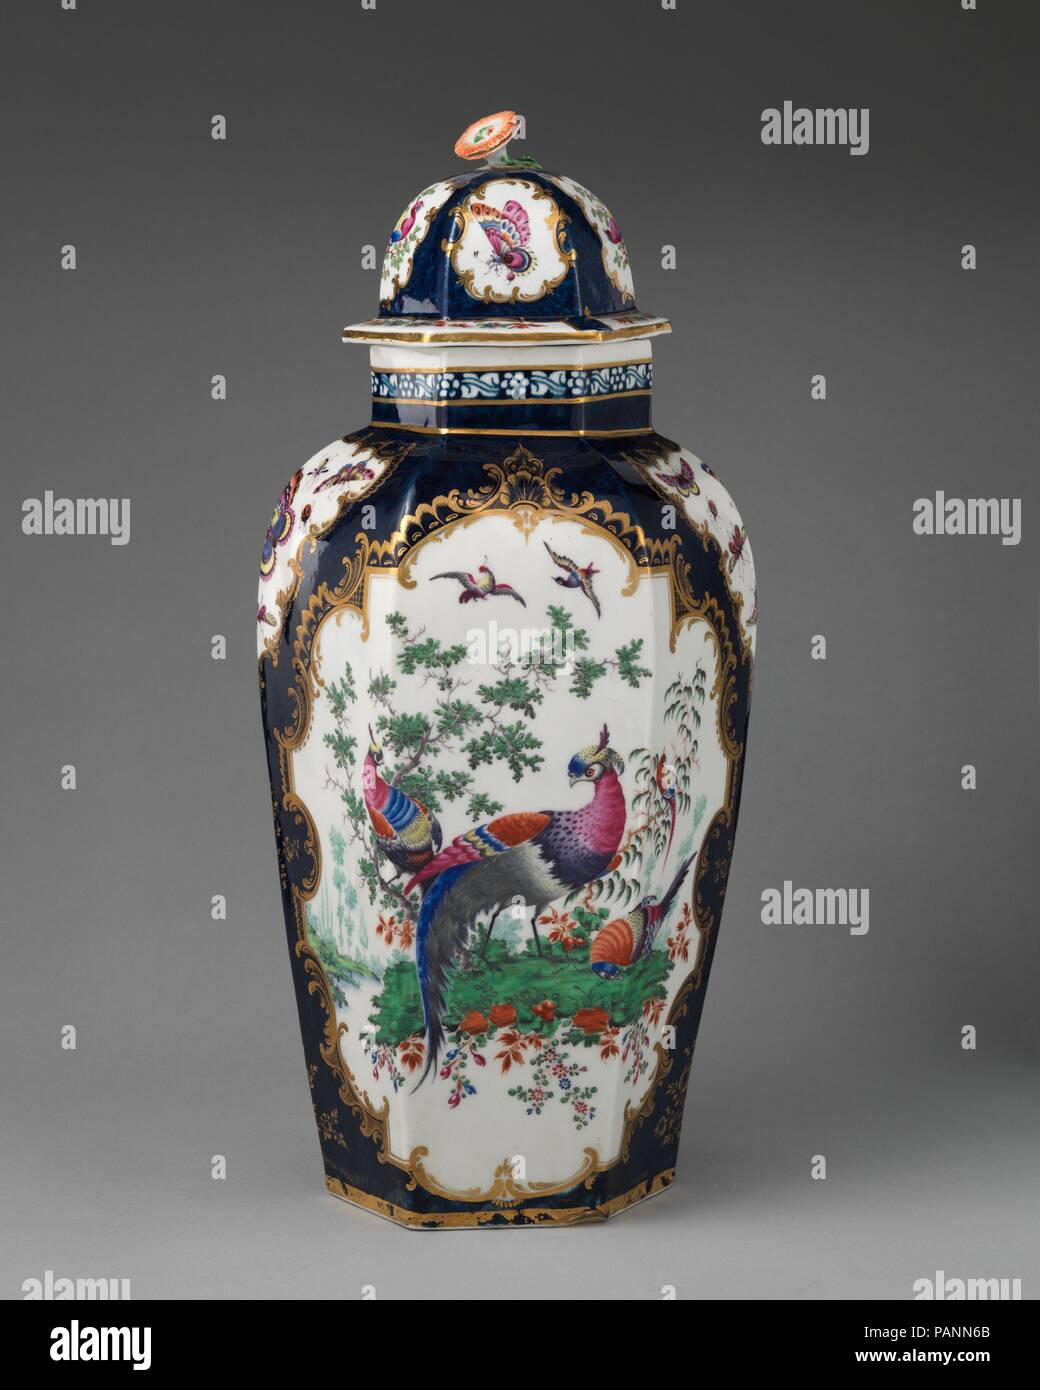 Vase with cover. Culture: British, Worcester. Dimensions: Height: 16 1/4 in. (41.3 cm). Factory: Worcester factory (British, 1751-2008). Date: ca. 1770-75. Museum: Metropolitan Museum of Art, New York, USA. Stock Photo